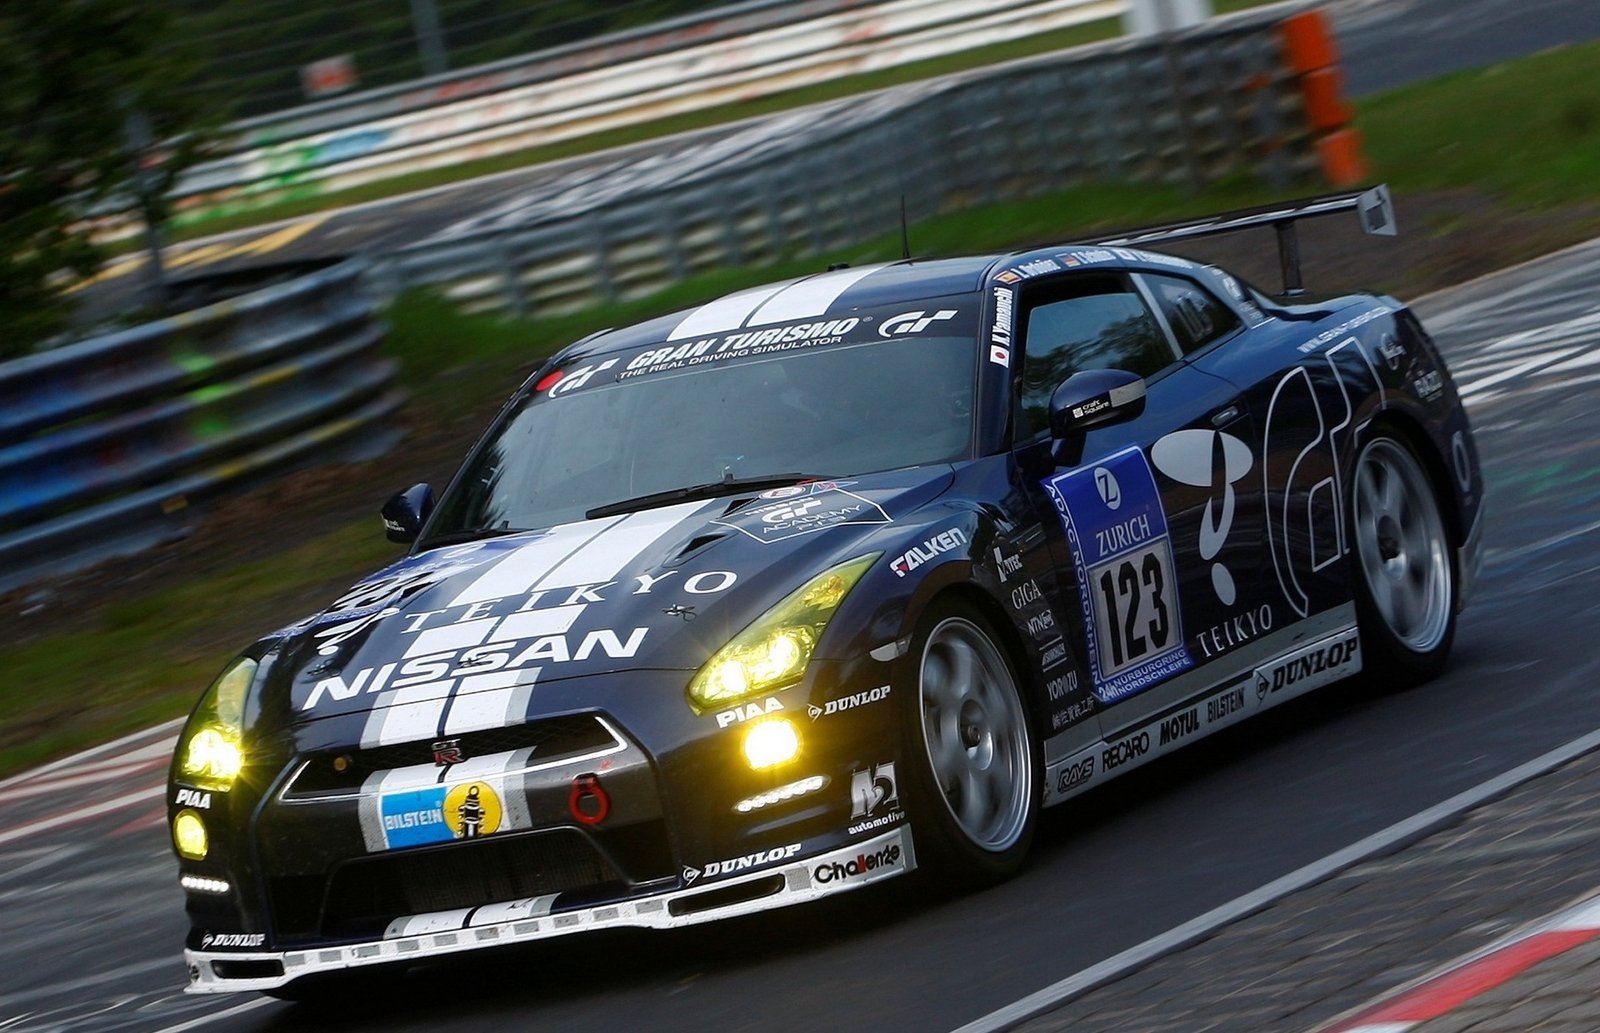 2014 nissan gt r nismo gt3 review top speed. Black Bedroom Furniture Sets. Home Design Ideas